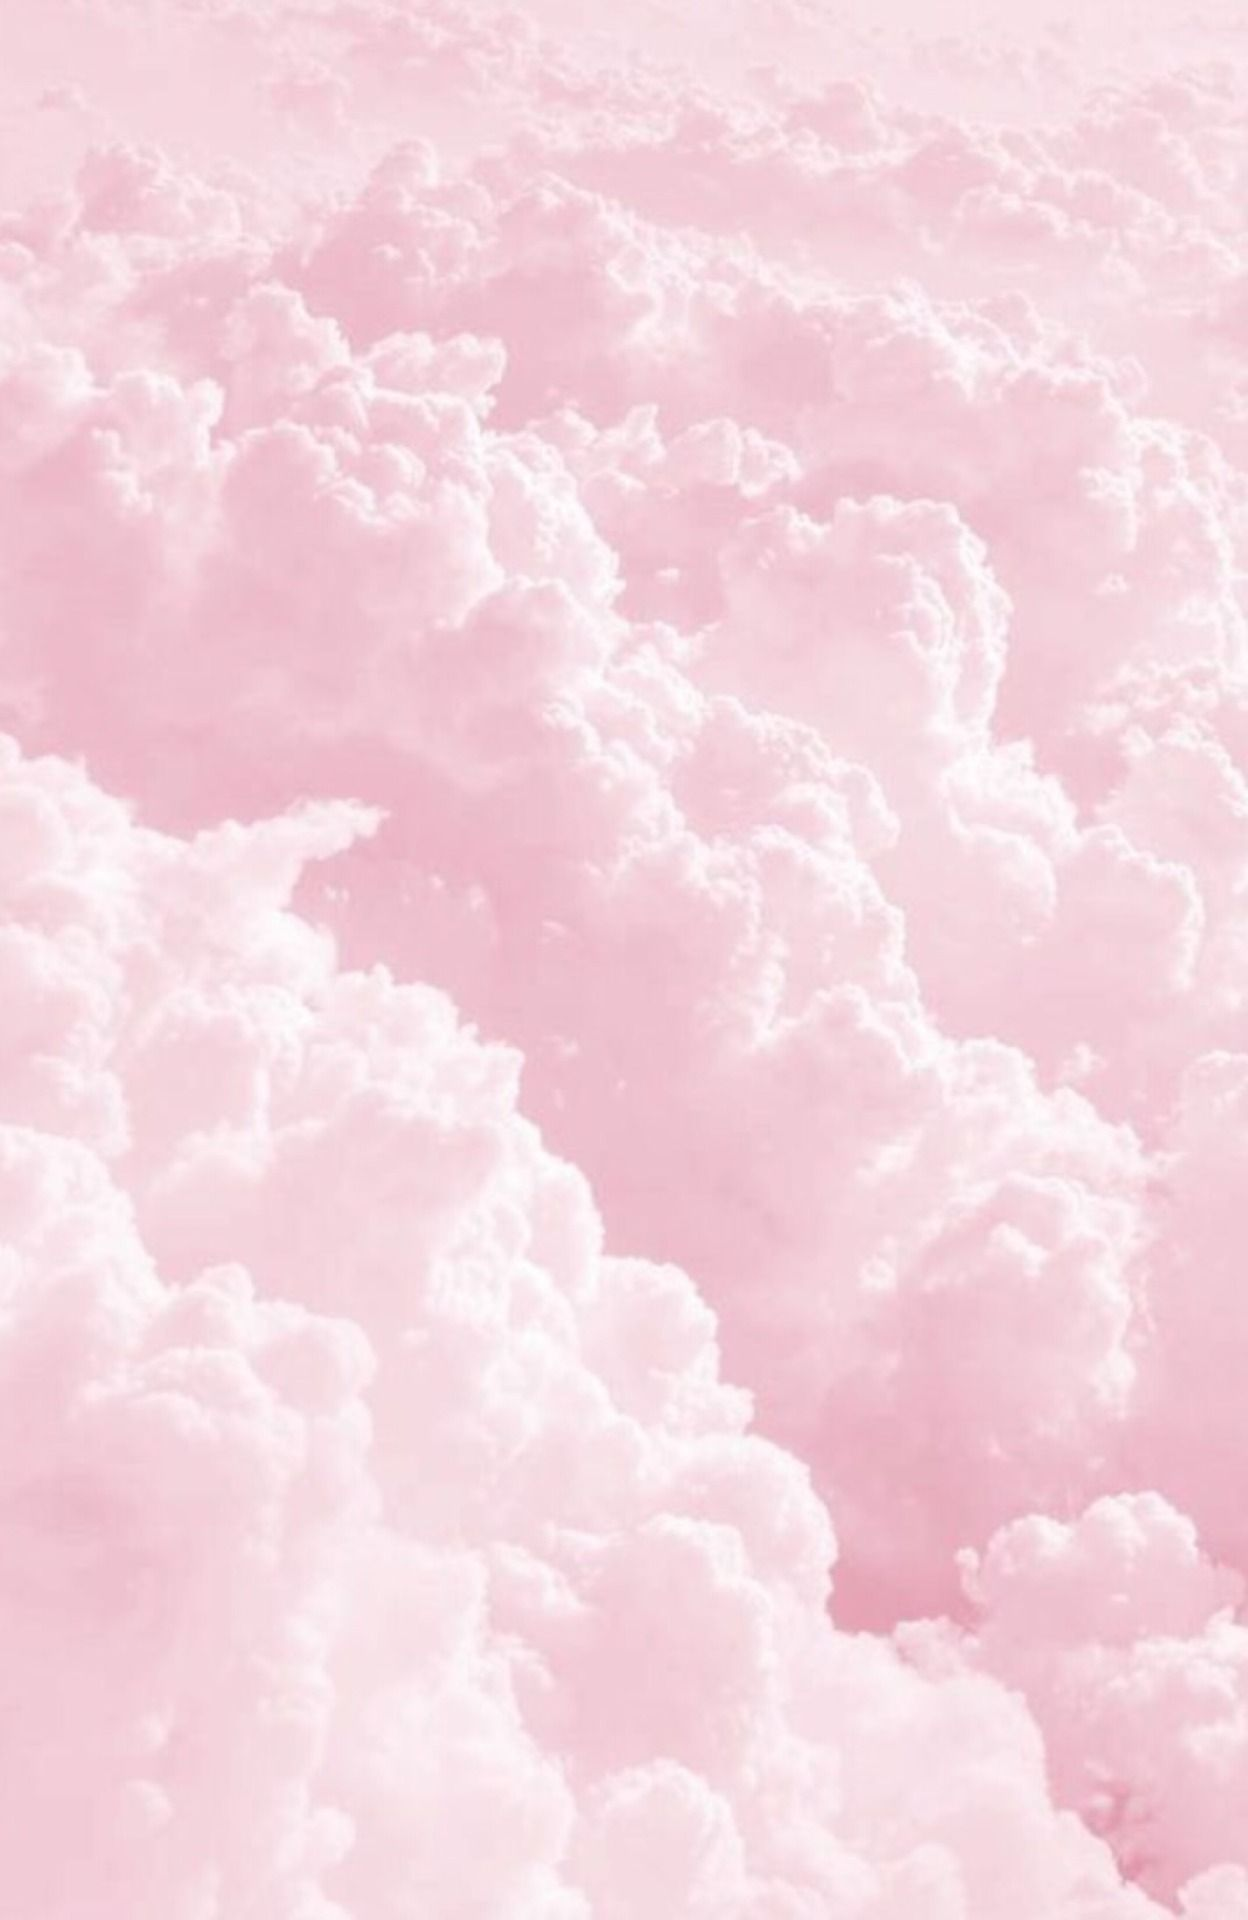 Aesthetic Pink Wallpapers On Wallpaperdog